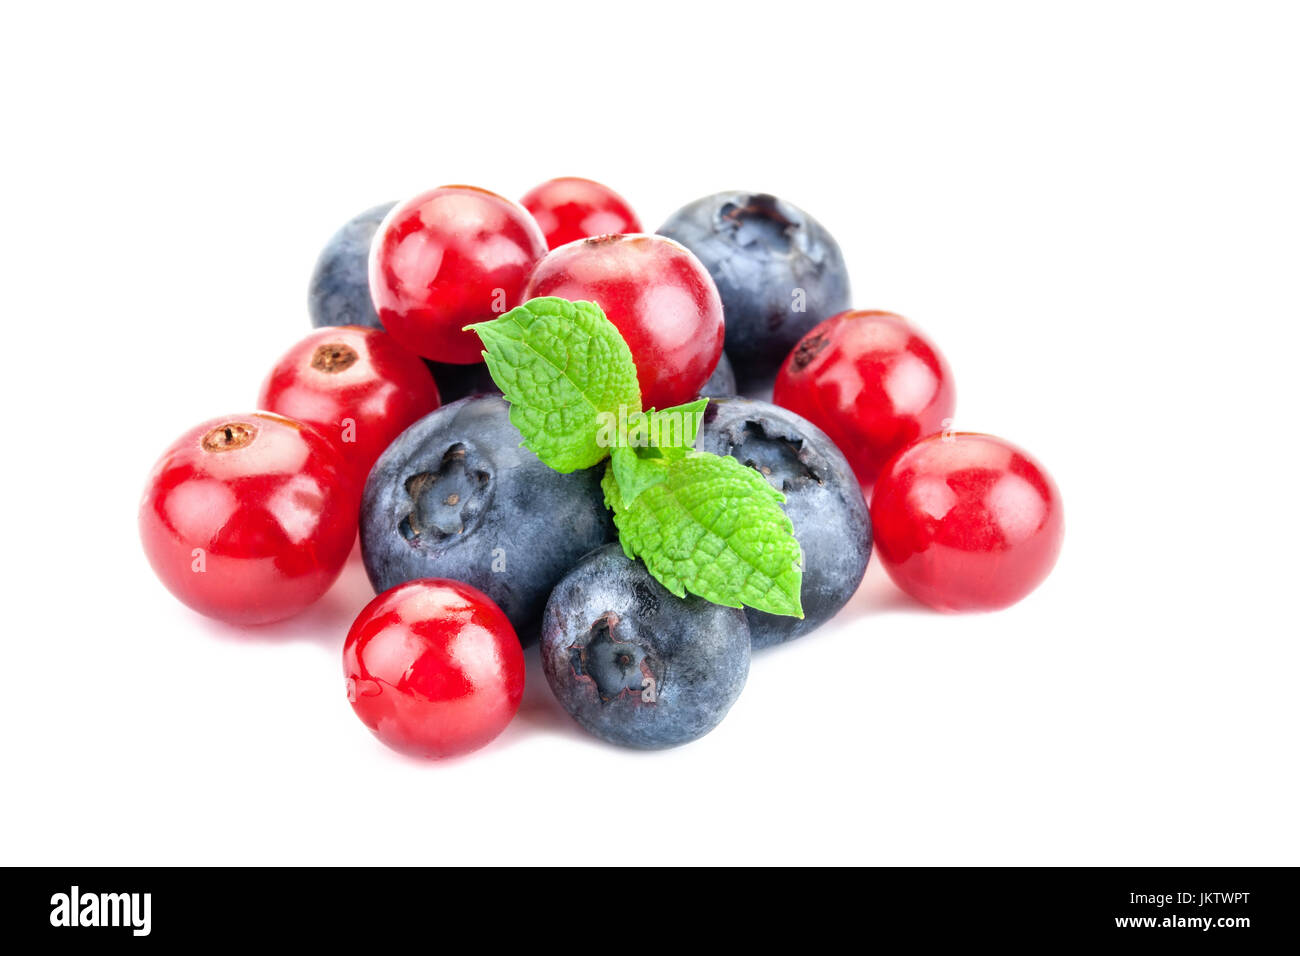 a bunch of fresh berries on a white background. Ripe Sweet Blueberry and red Currant. Stock Photo